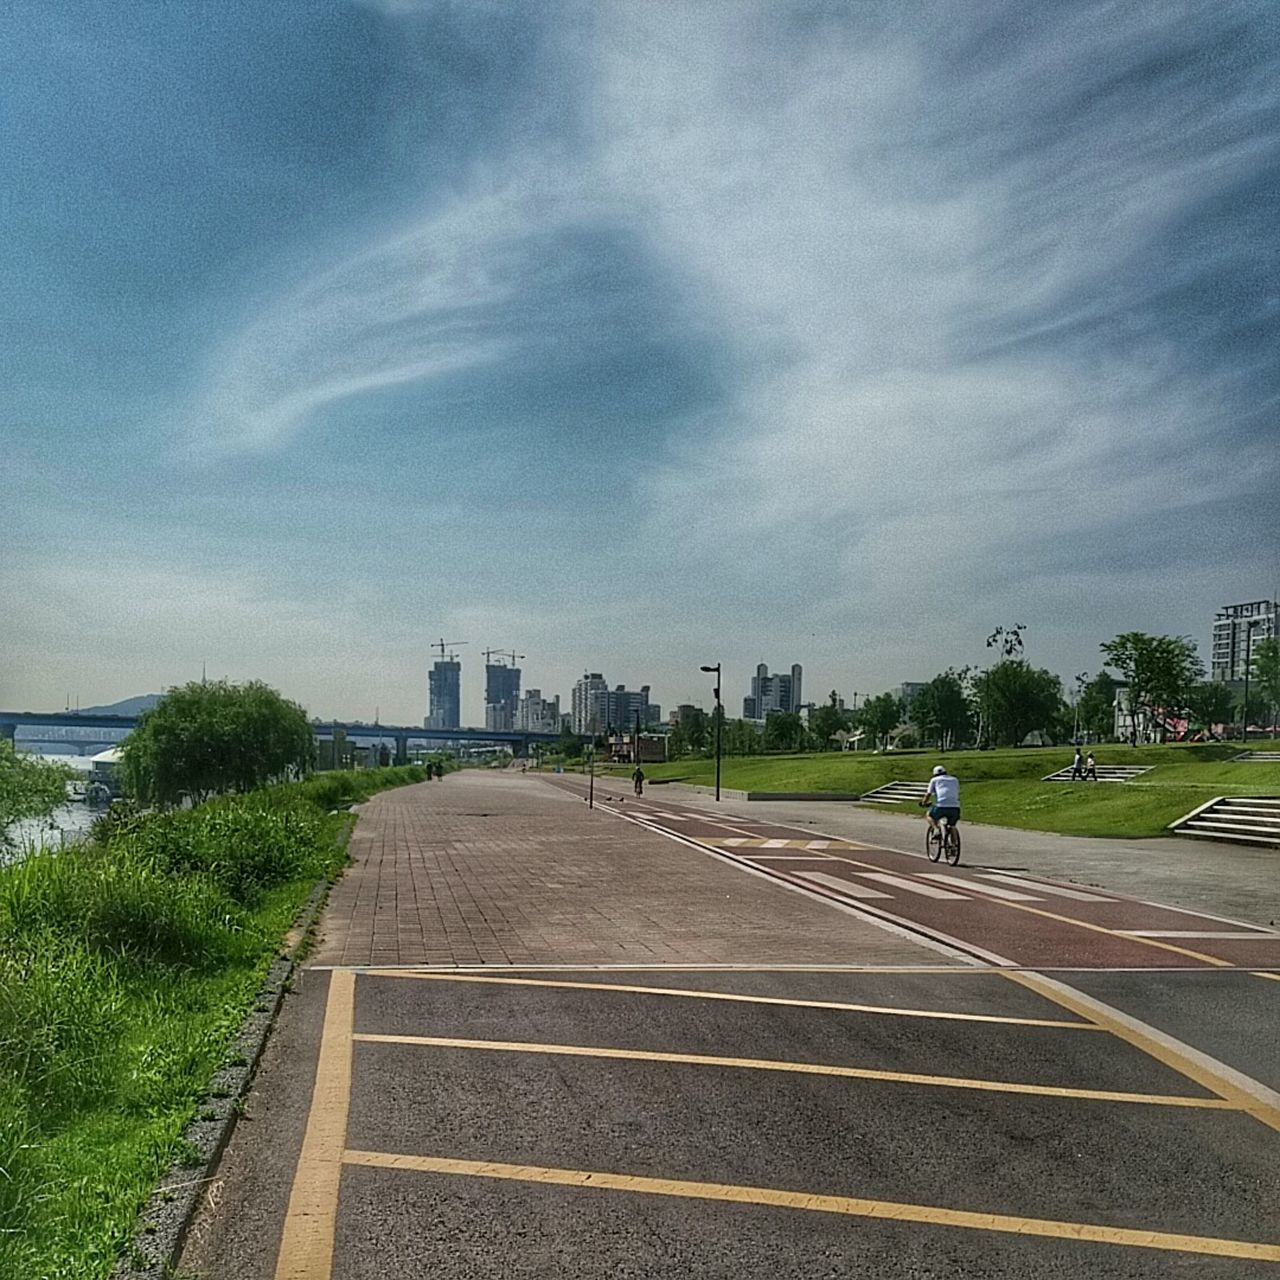 architecture, built structure, sky, building exterior, city, cloud - sky, skyscraper, day, tree, transportation, outdoors, modern, real people, road, travel destinations, growth, cityscape, urban skyline, full length